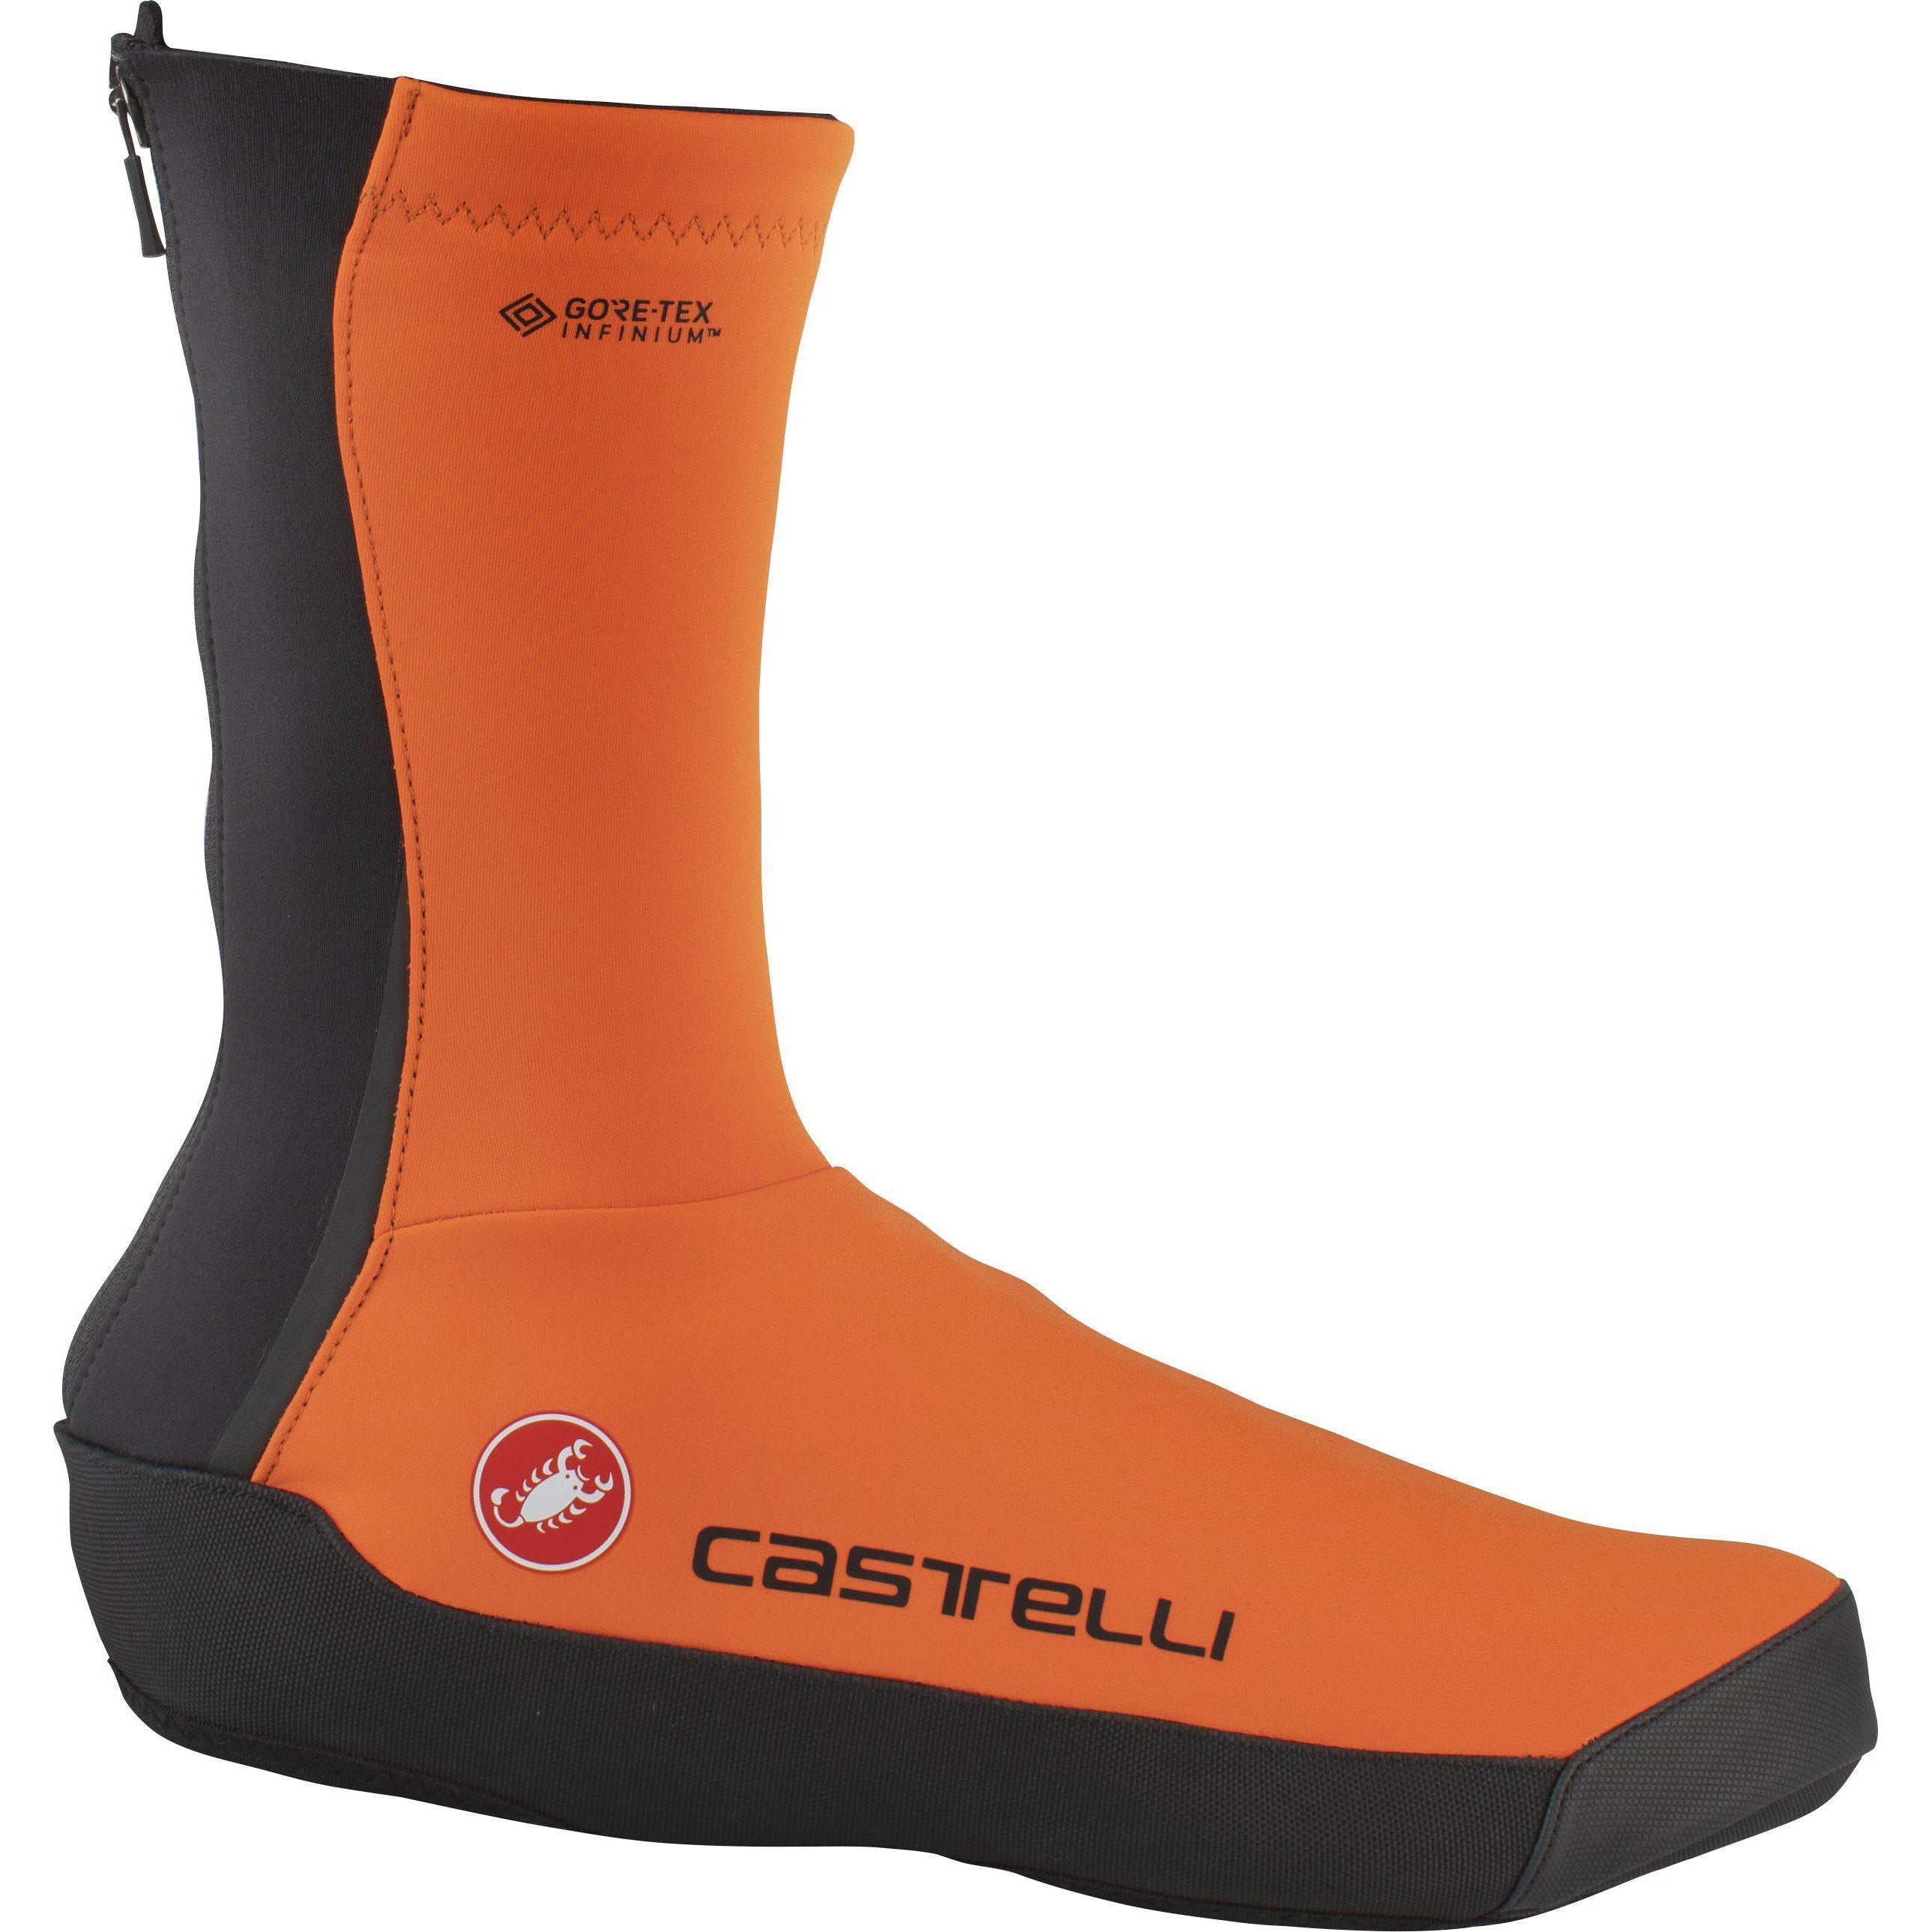 Castelli-Castelli Intenso UL Shoe Covers-Orange-S-CS205380342-saddleback-elite-performance-cycling